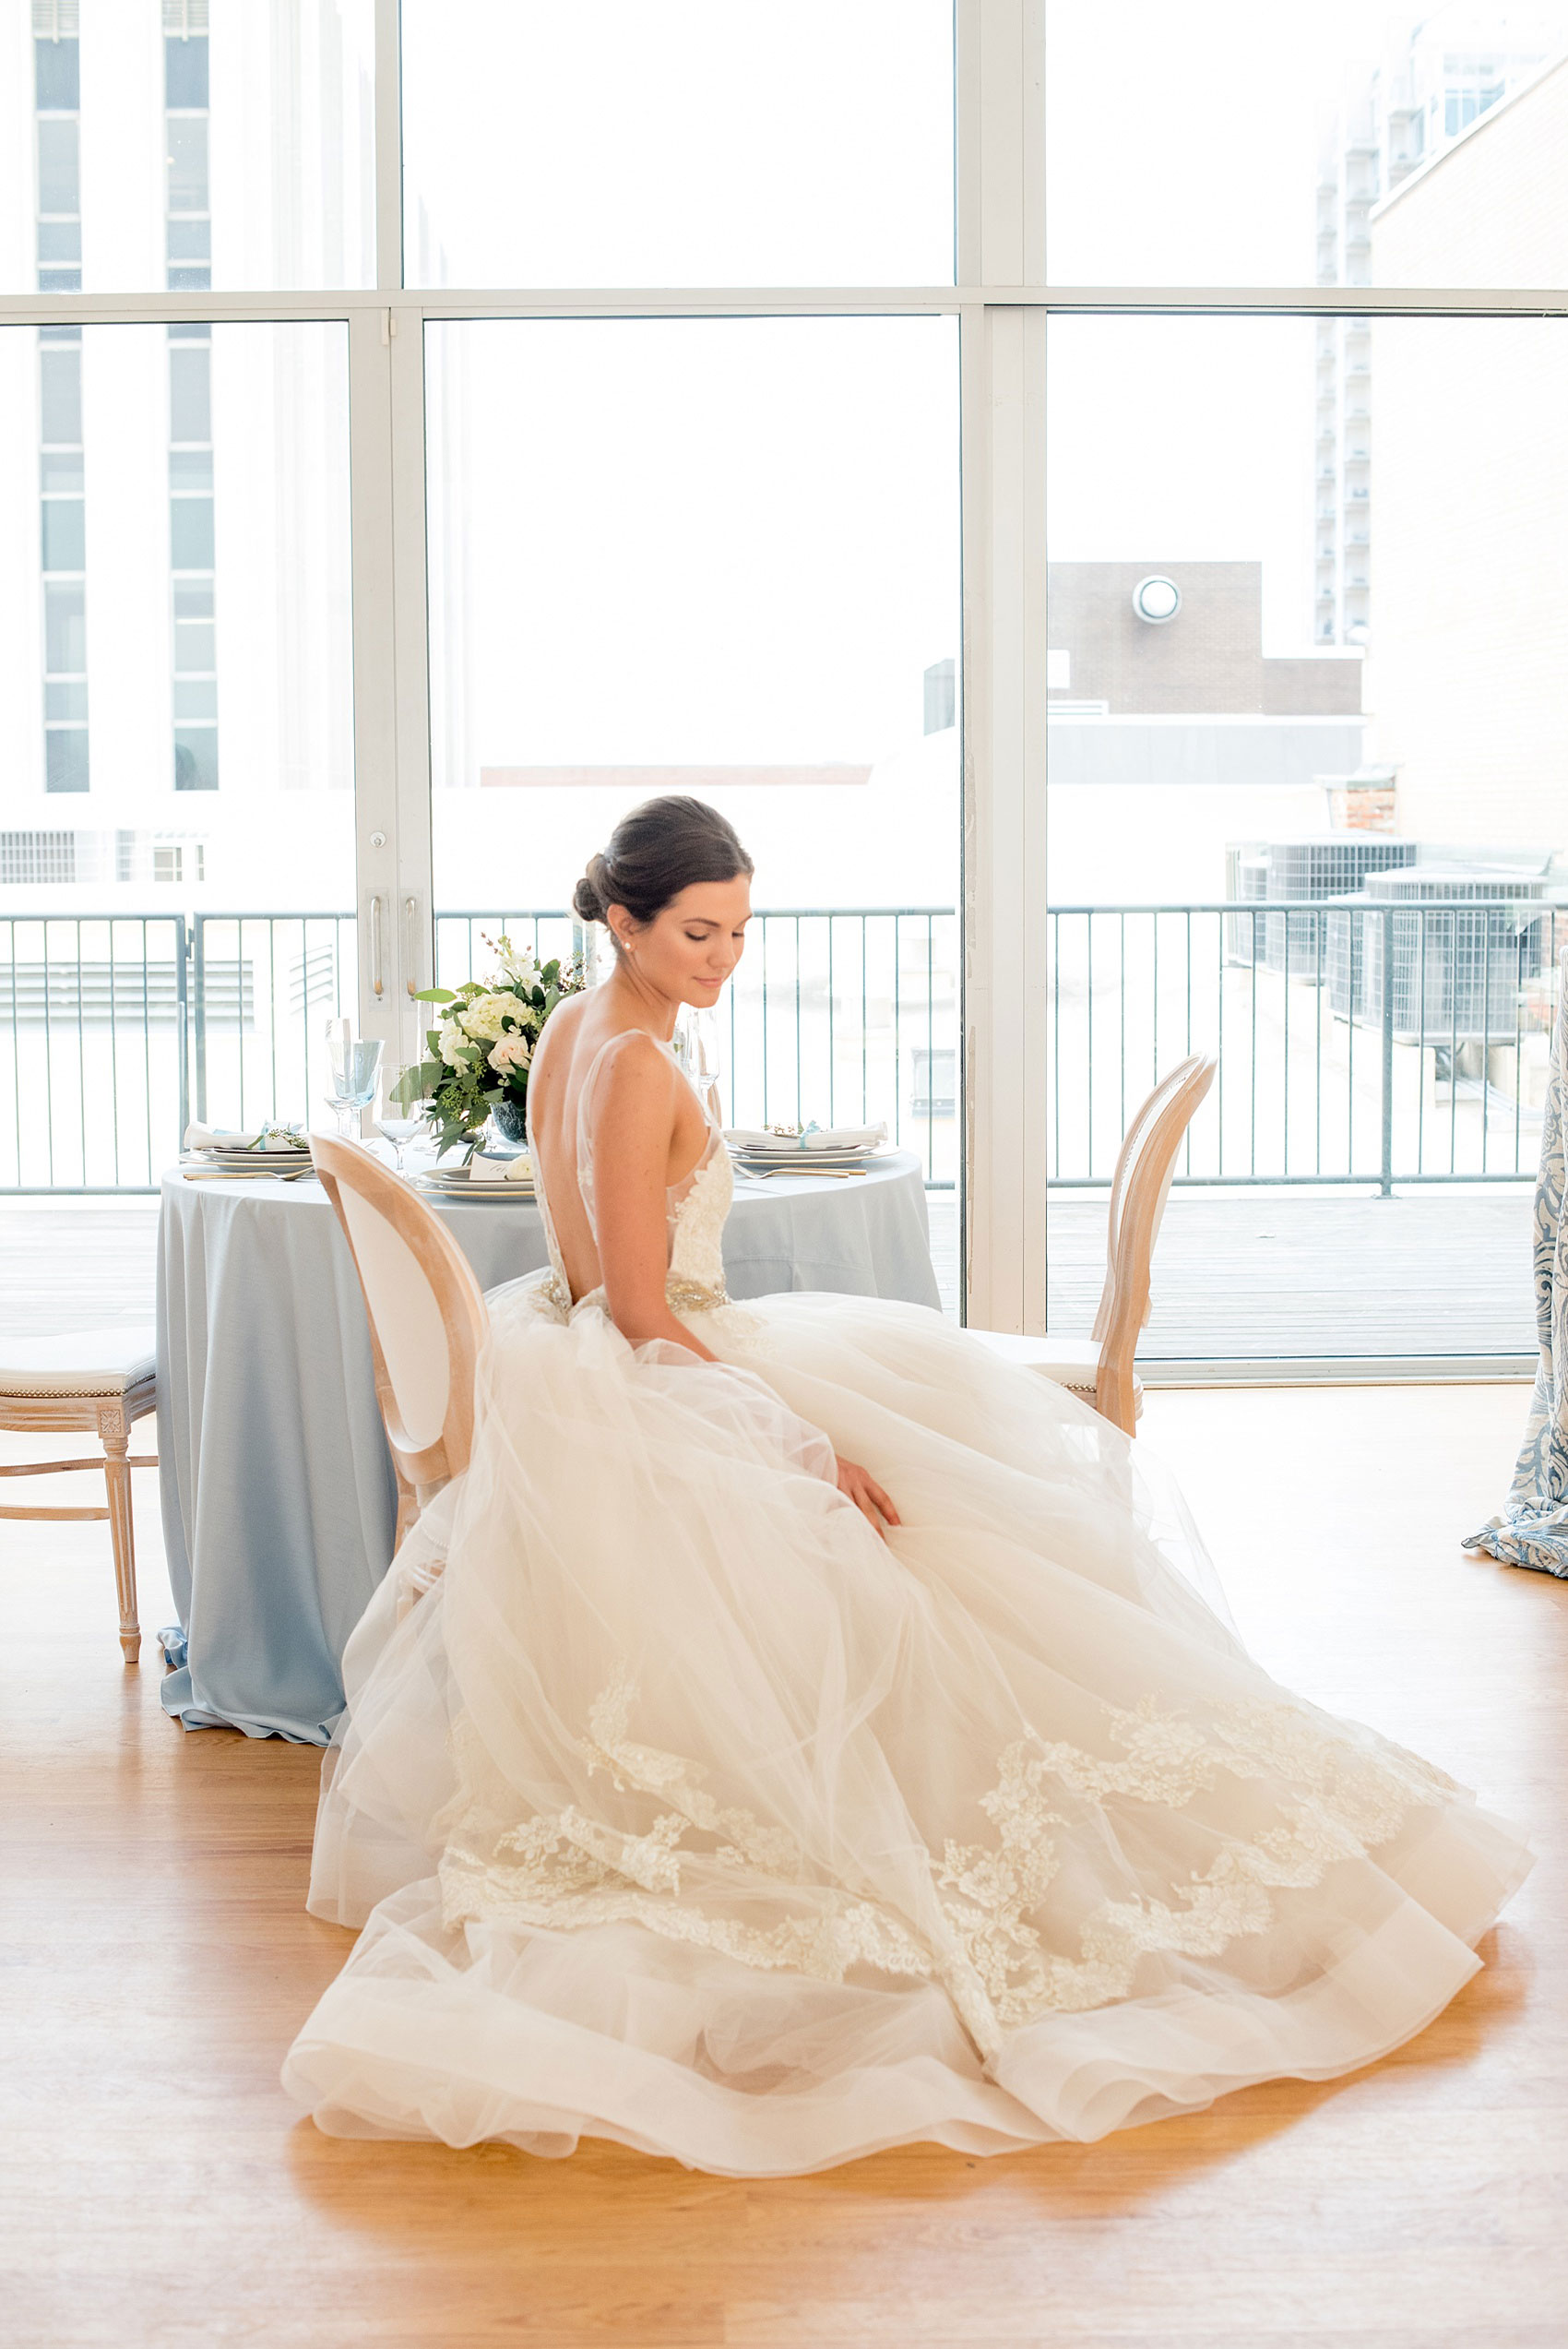 The Glass Box Raleigh wedding photos by Mikkel Paige Photography. Picture of the bride in a Lazaro gown in this modern downtown venue.